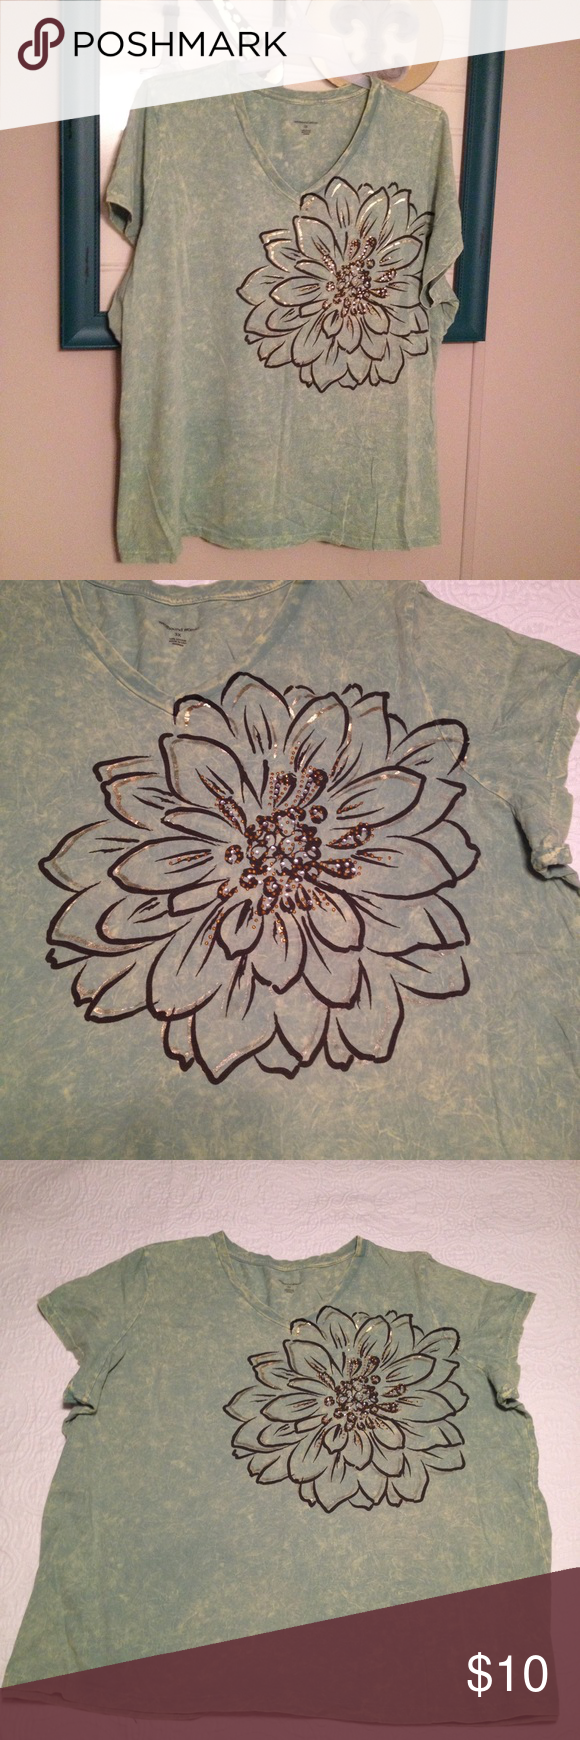 💚Green floral tee with crystal details. Pretty and vibrant green v neck tee with a floral design and crystal details on front. Soft and comfortable. Gently worn but in great condition with no stains or tears. westbound woman Tops Tees - Short Sleeve